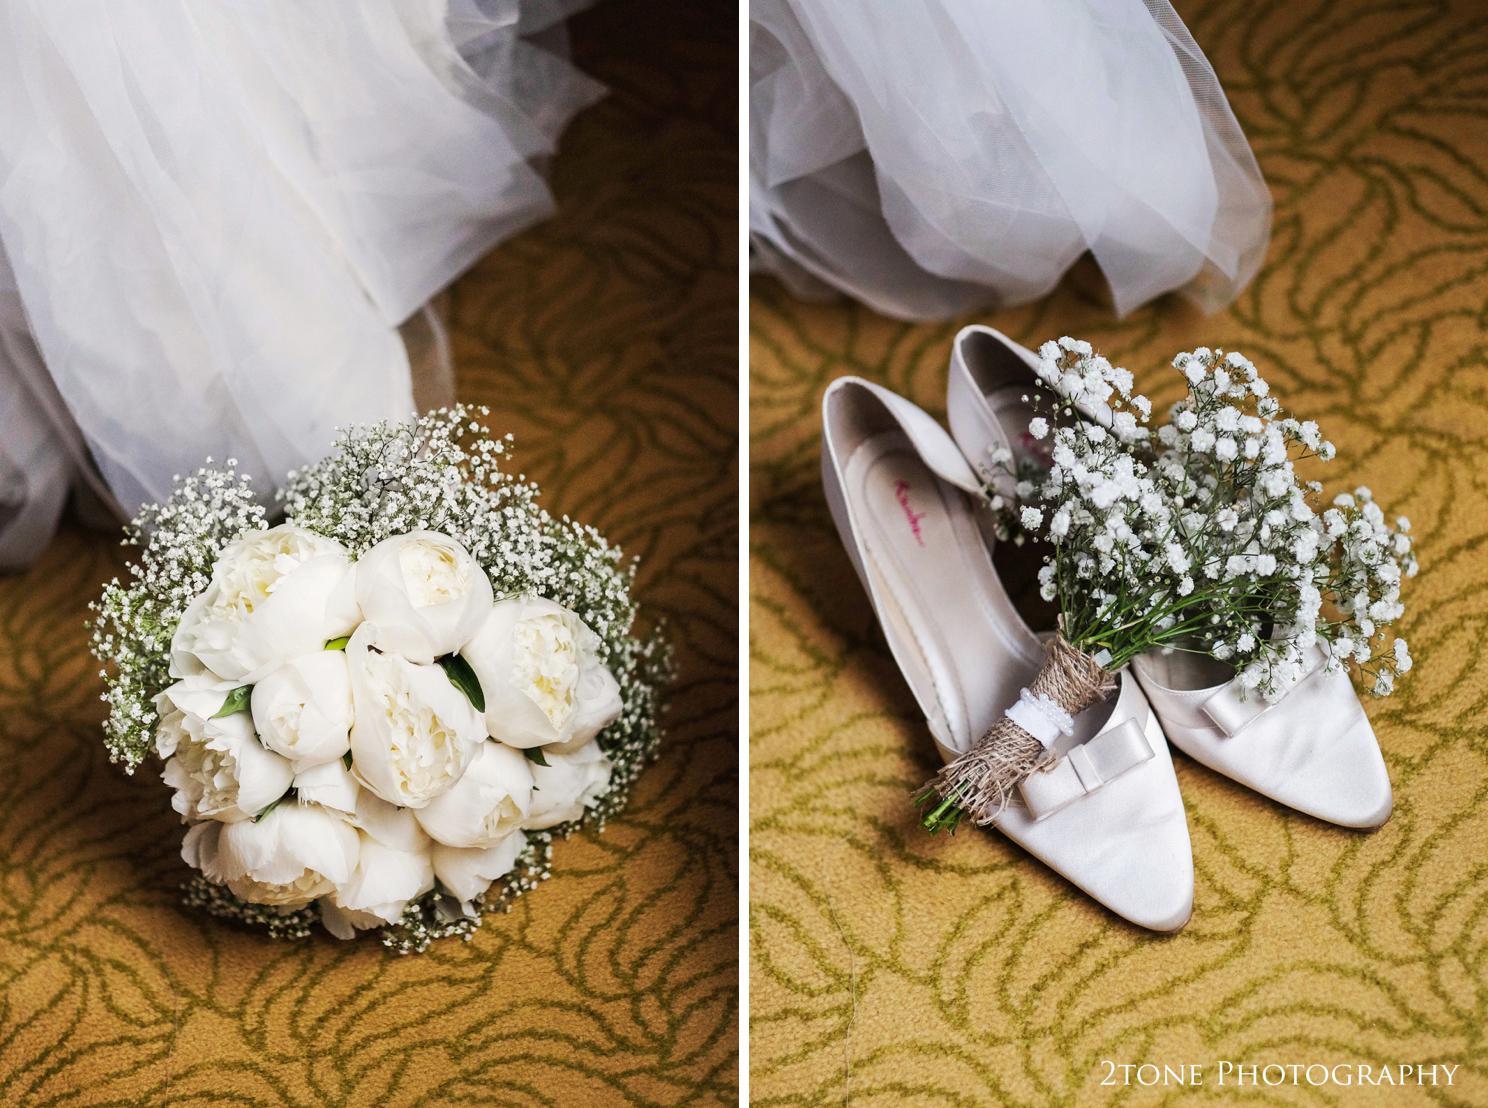 Sarah chose low heeled Rainbow wedding shoes and a beautiful combination of Peonie Roses and Gypsophila for her wedding bouquet.